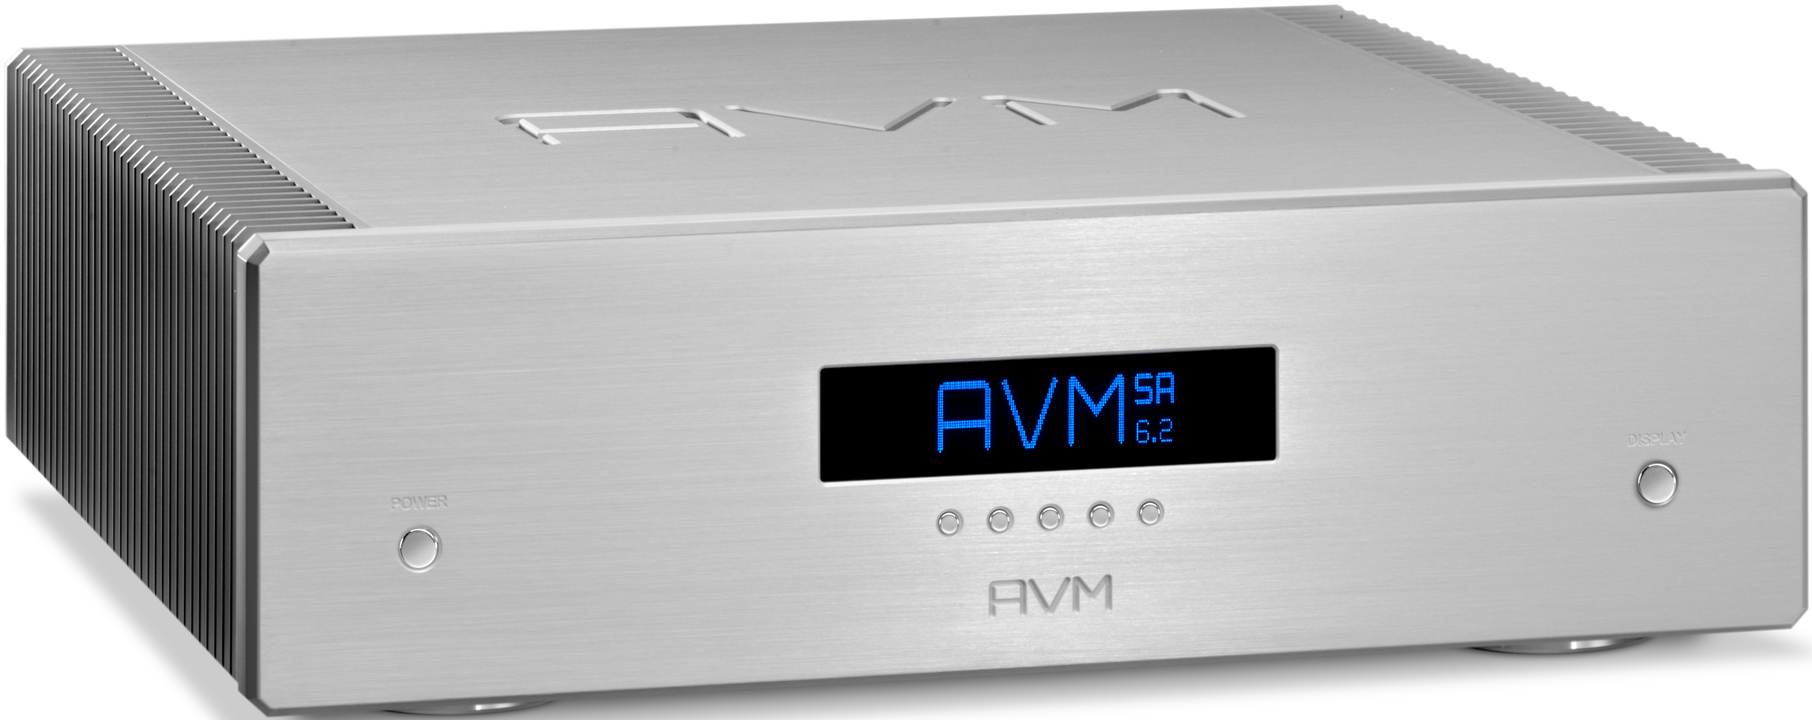 AVM Ovation SA 6.2 stereo amplifier Review